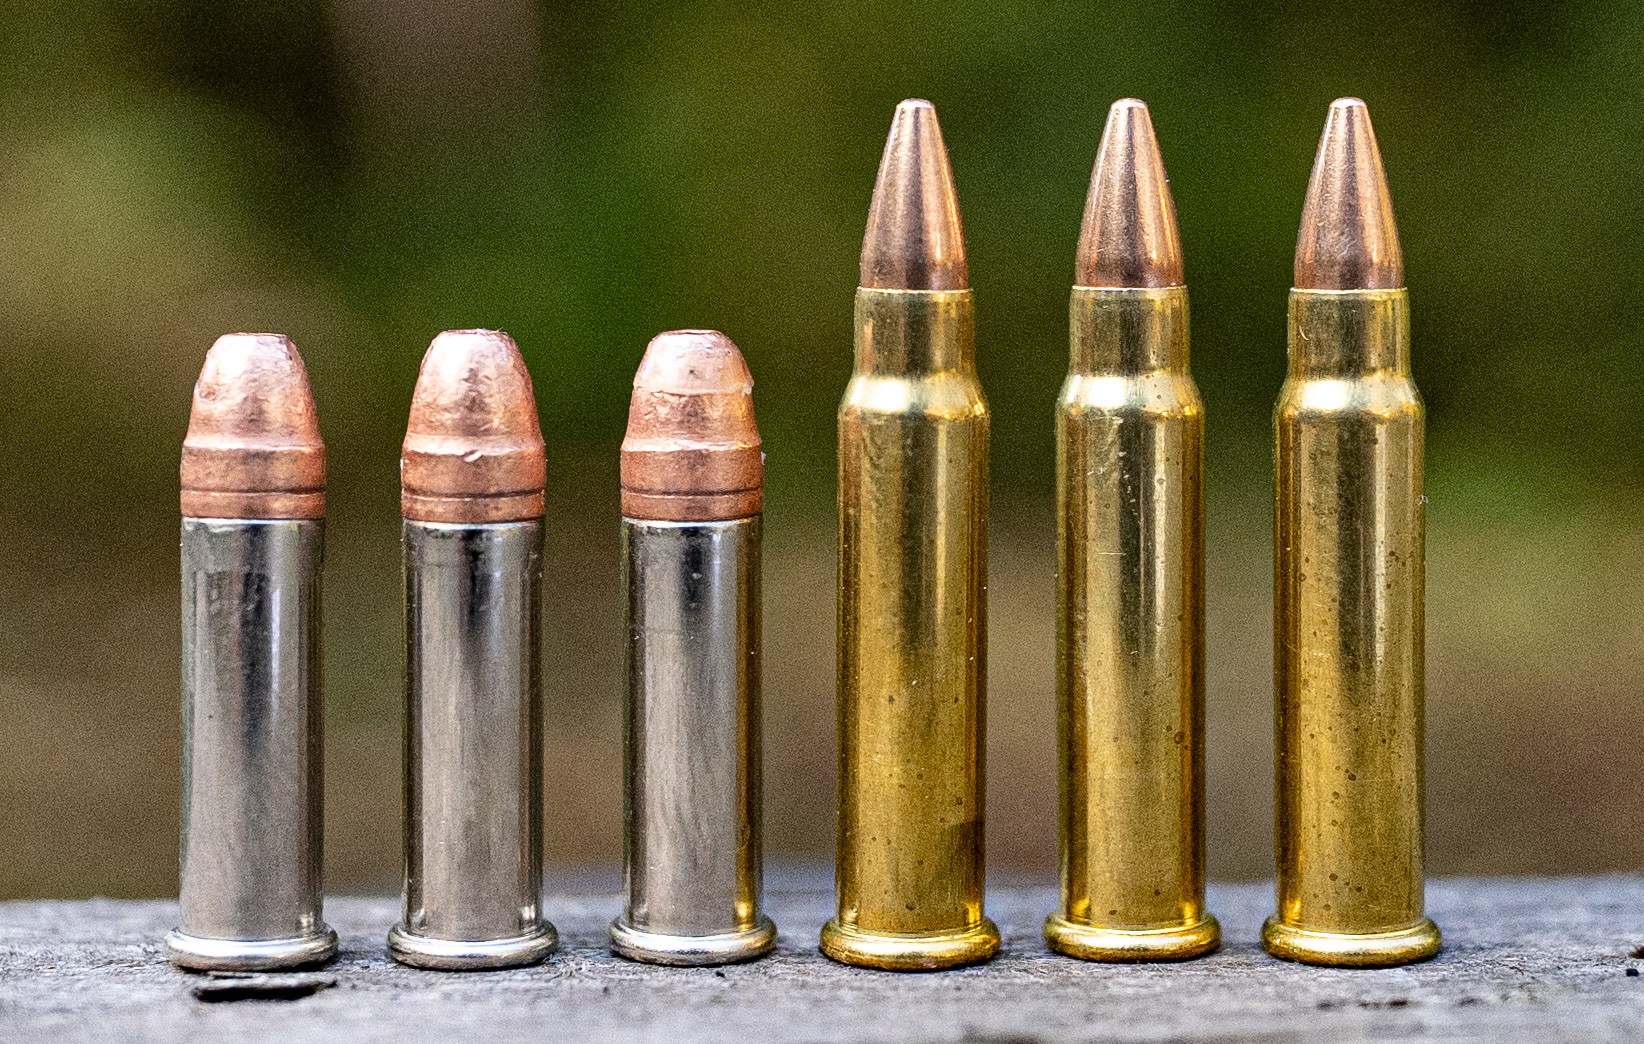 22lr ammo next to 17 hmr ammo at a shooting range